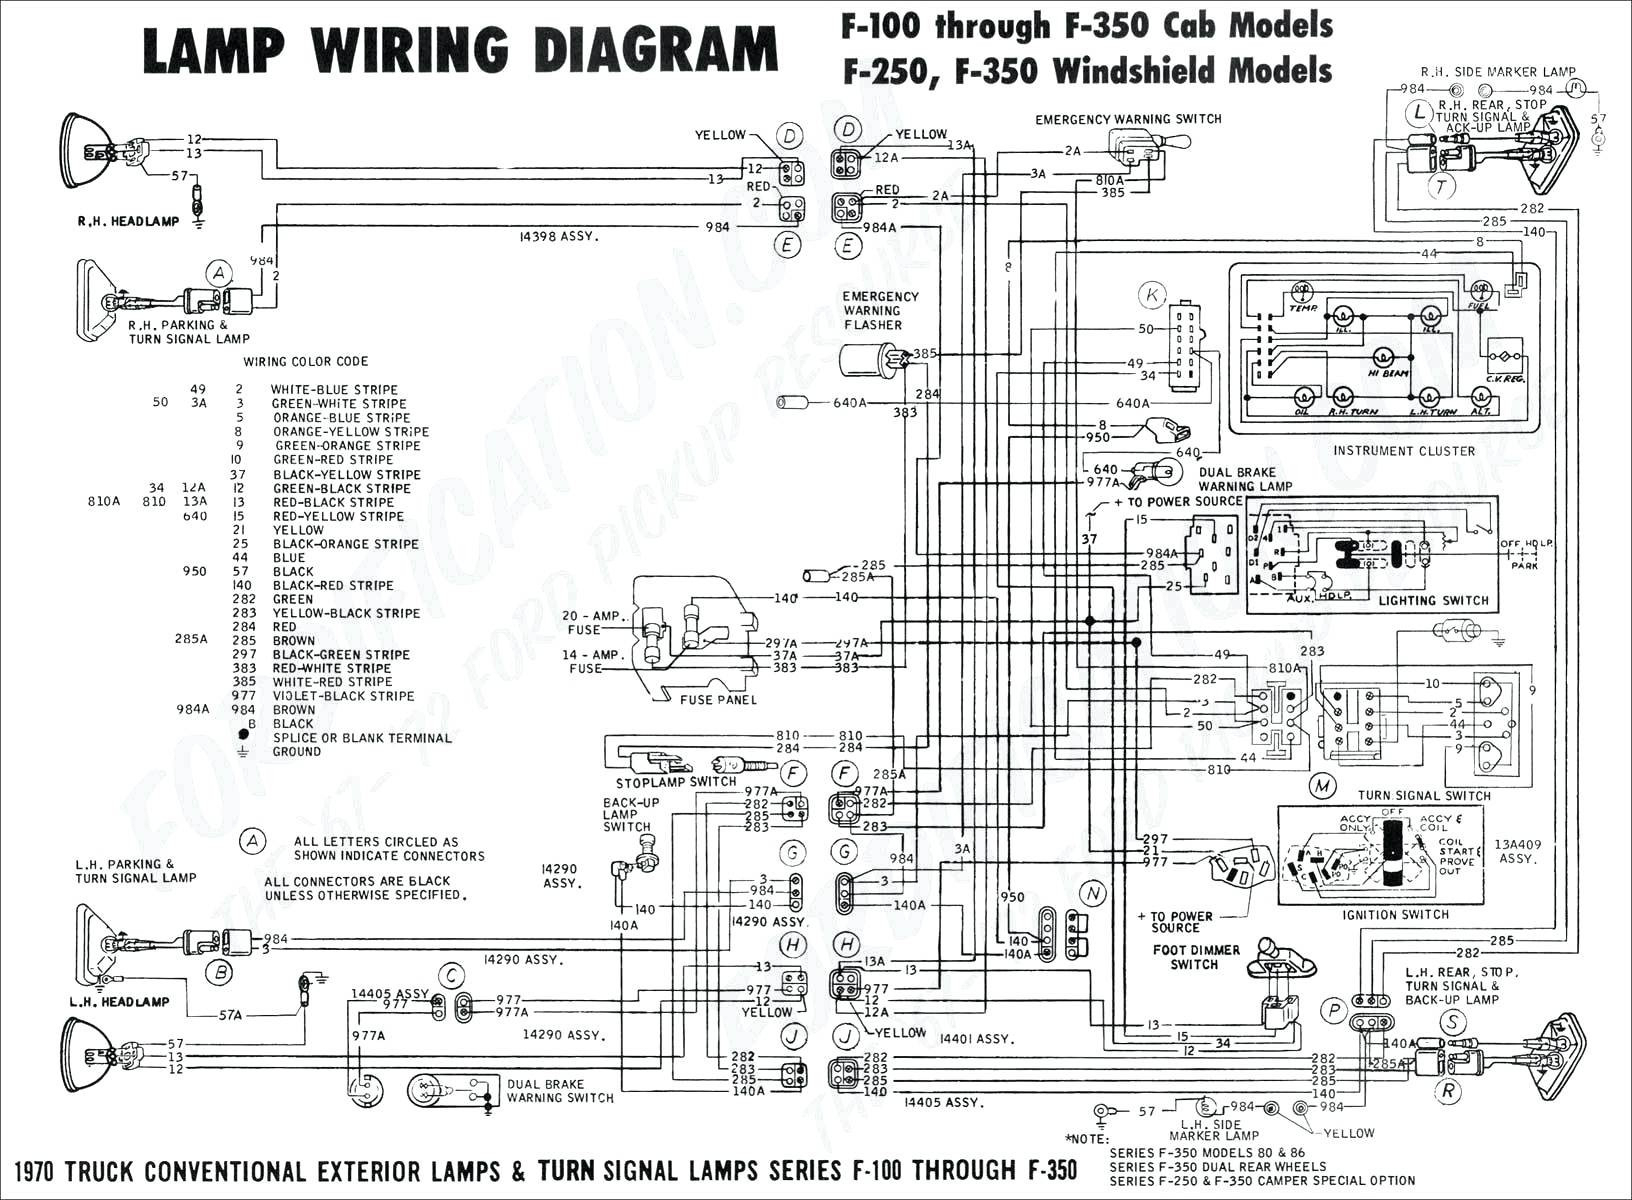 Relay Dayton Diagram Wiring 1ehl5 - Wiring Diagrams Rename on